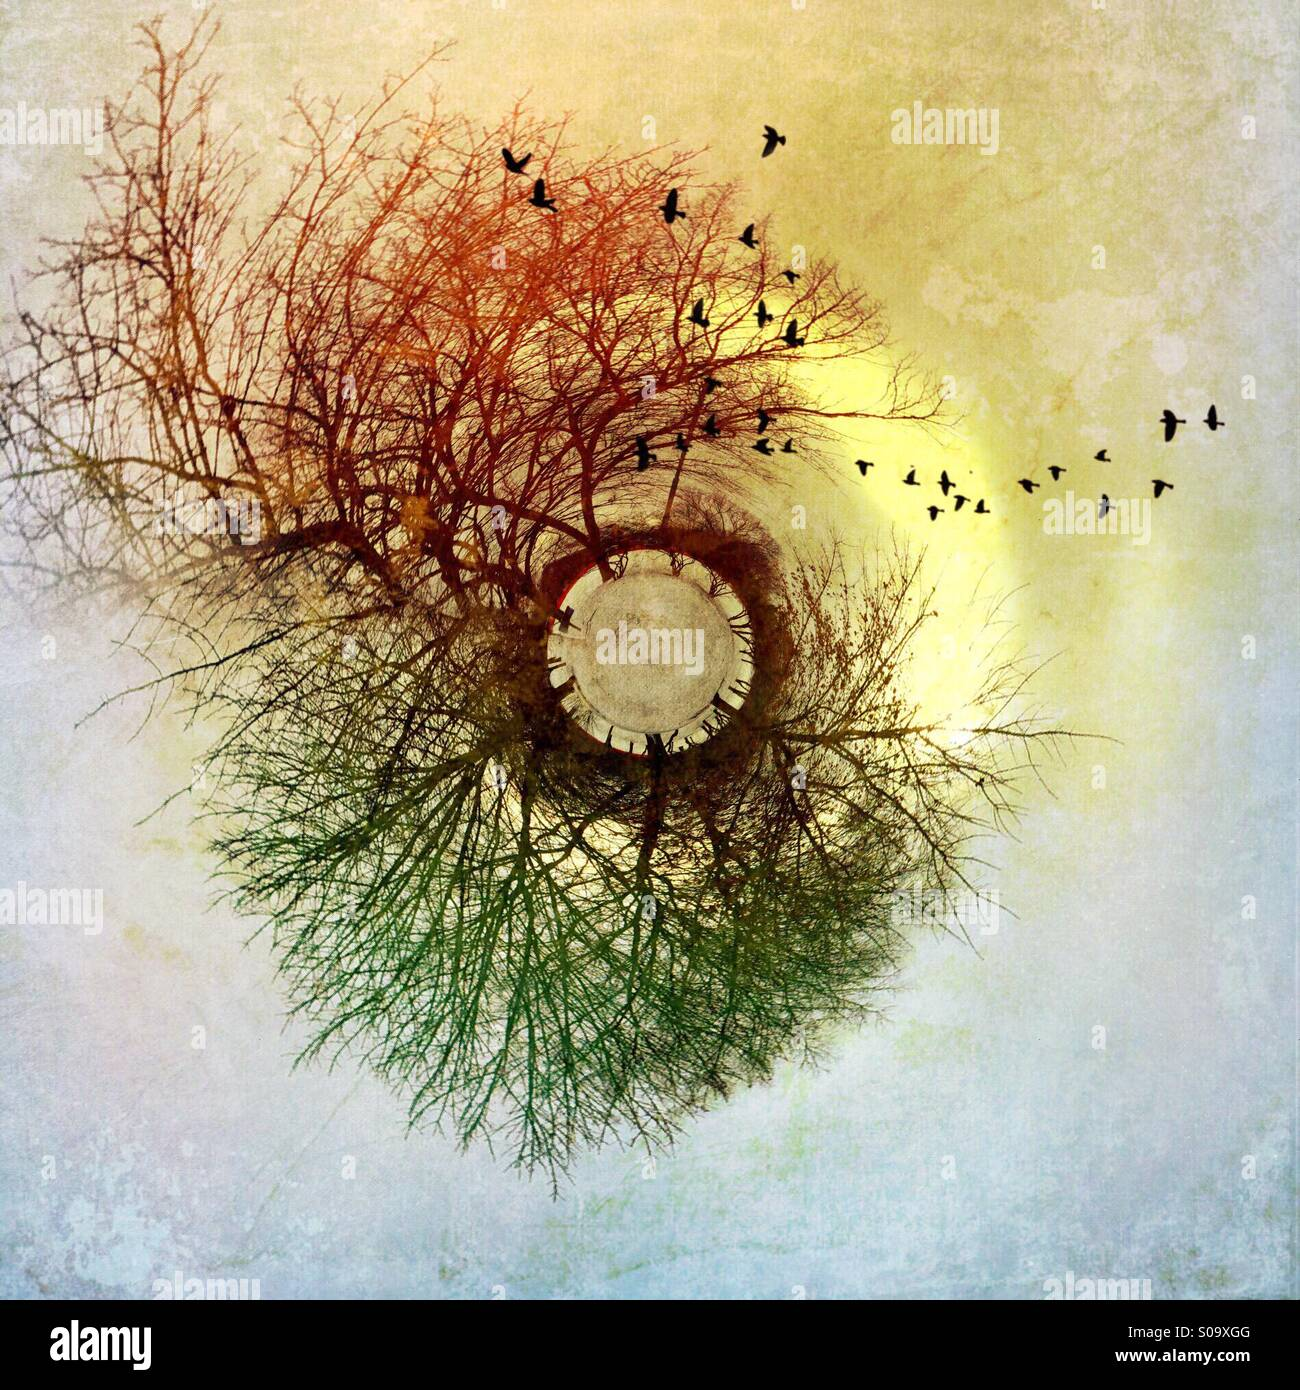 Trees and birds around a small planet. - Stock Image